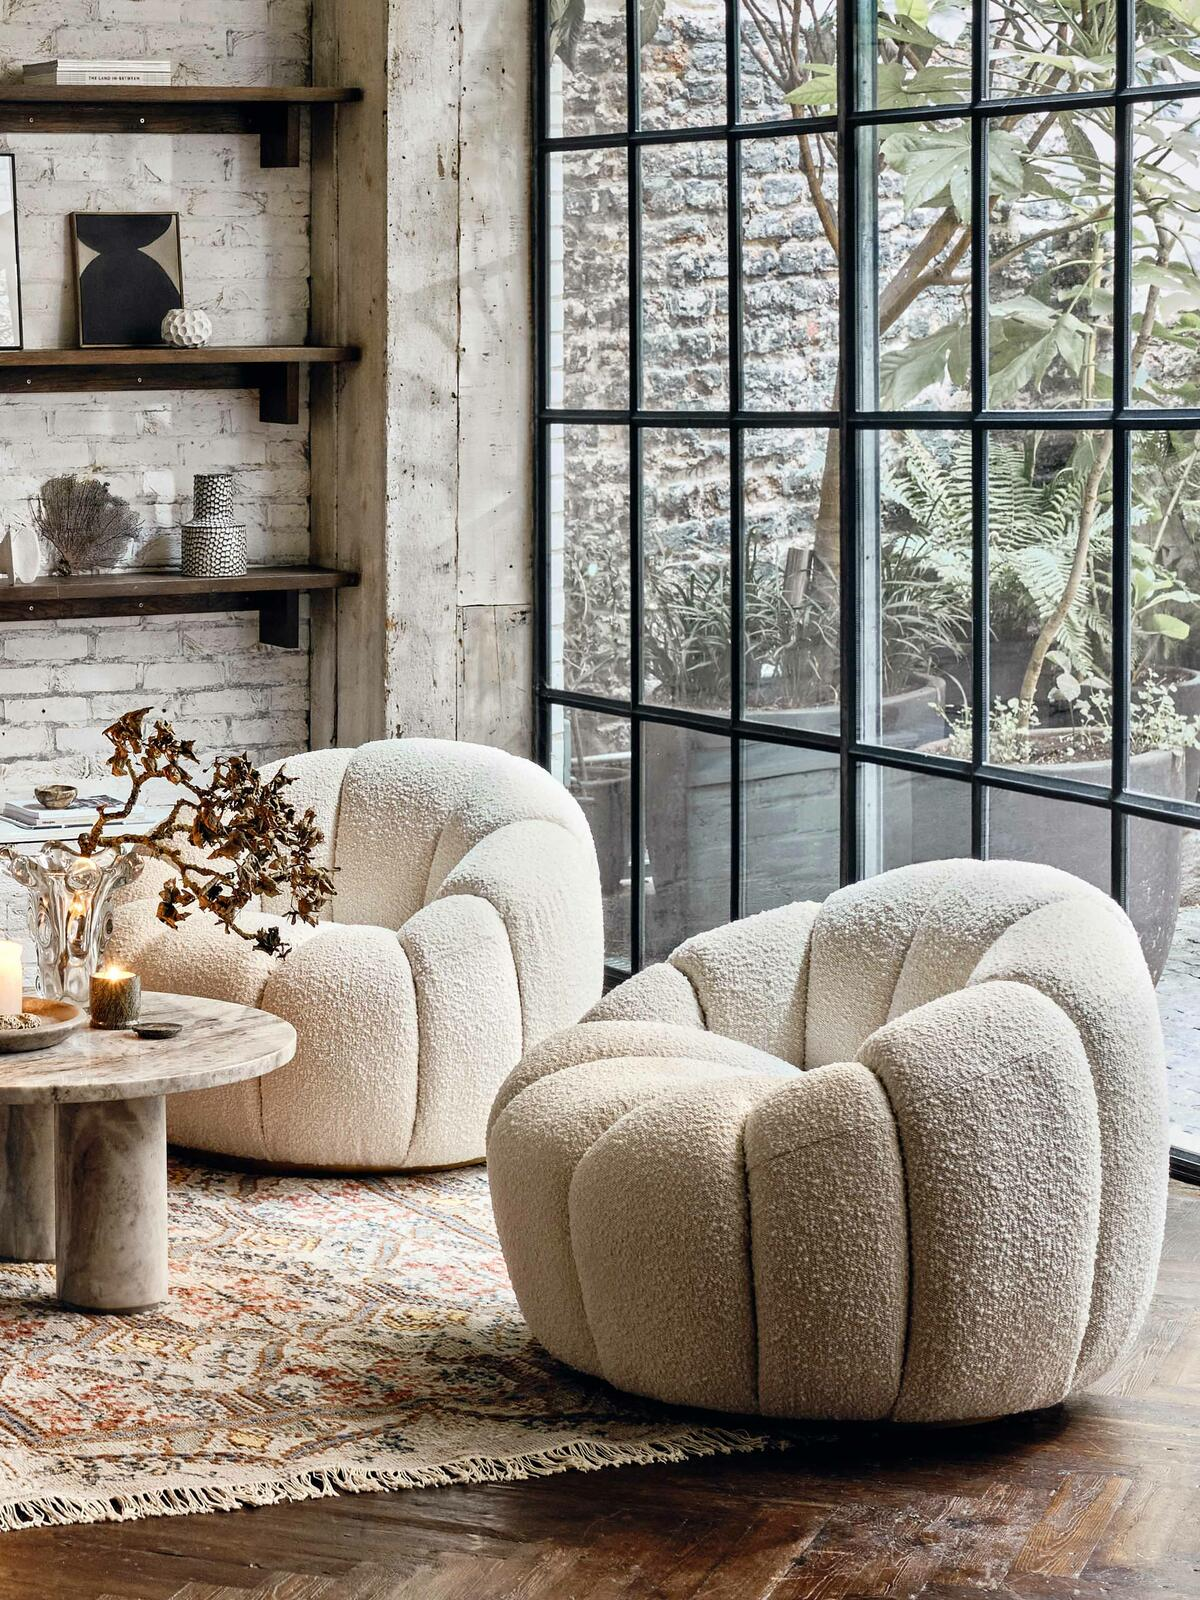 Fuzzy white round chair in beside window panels